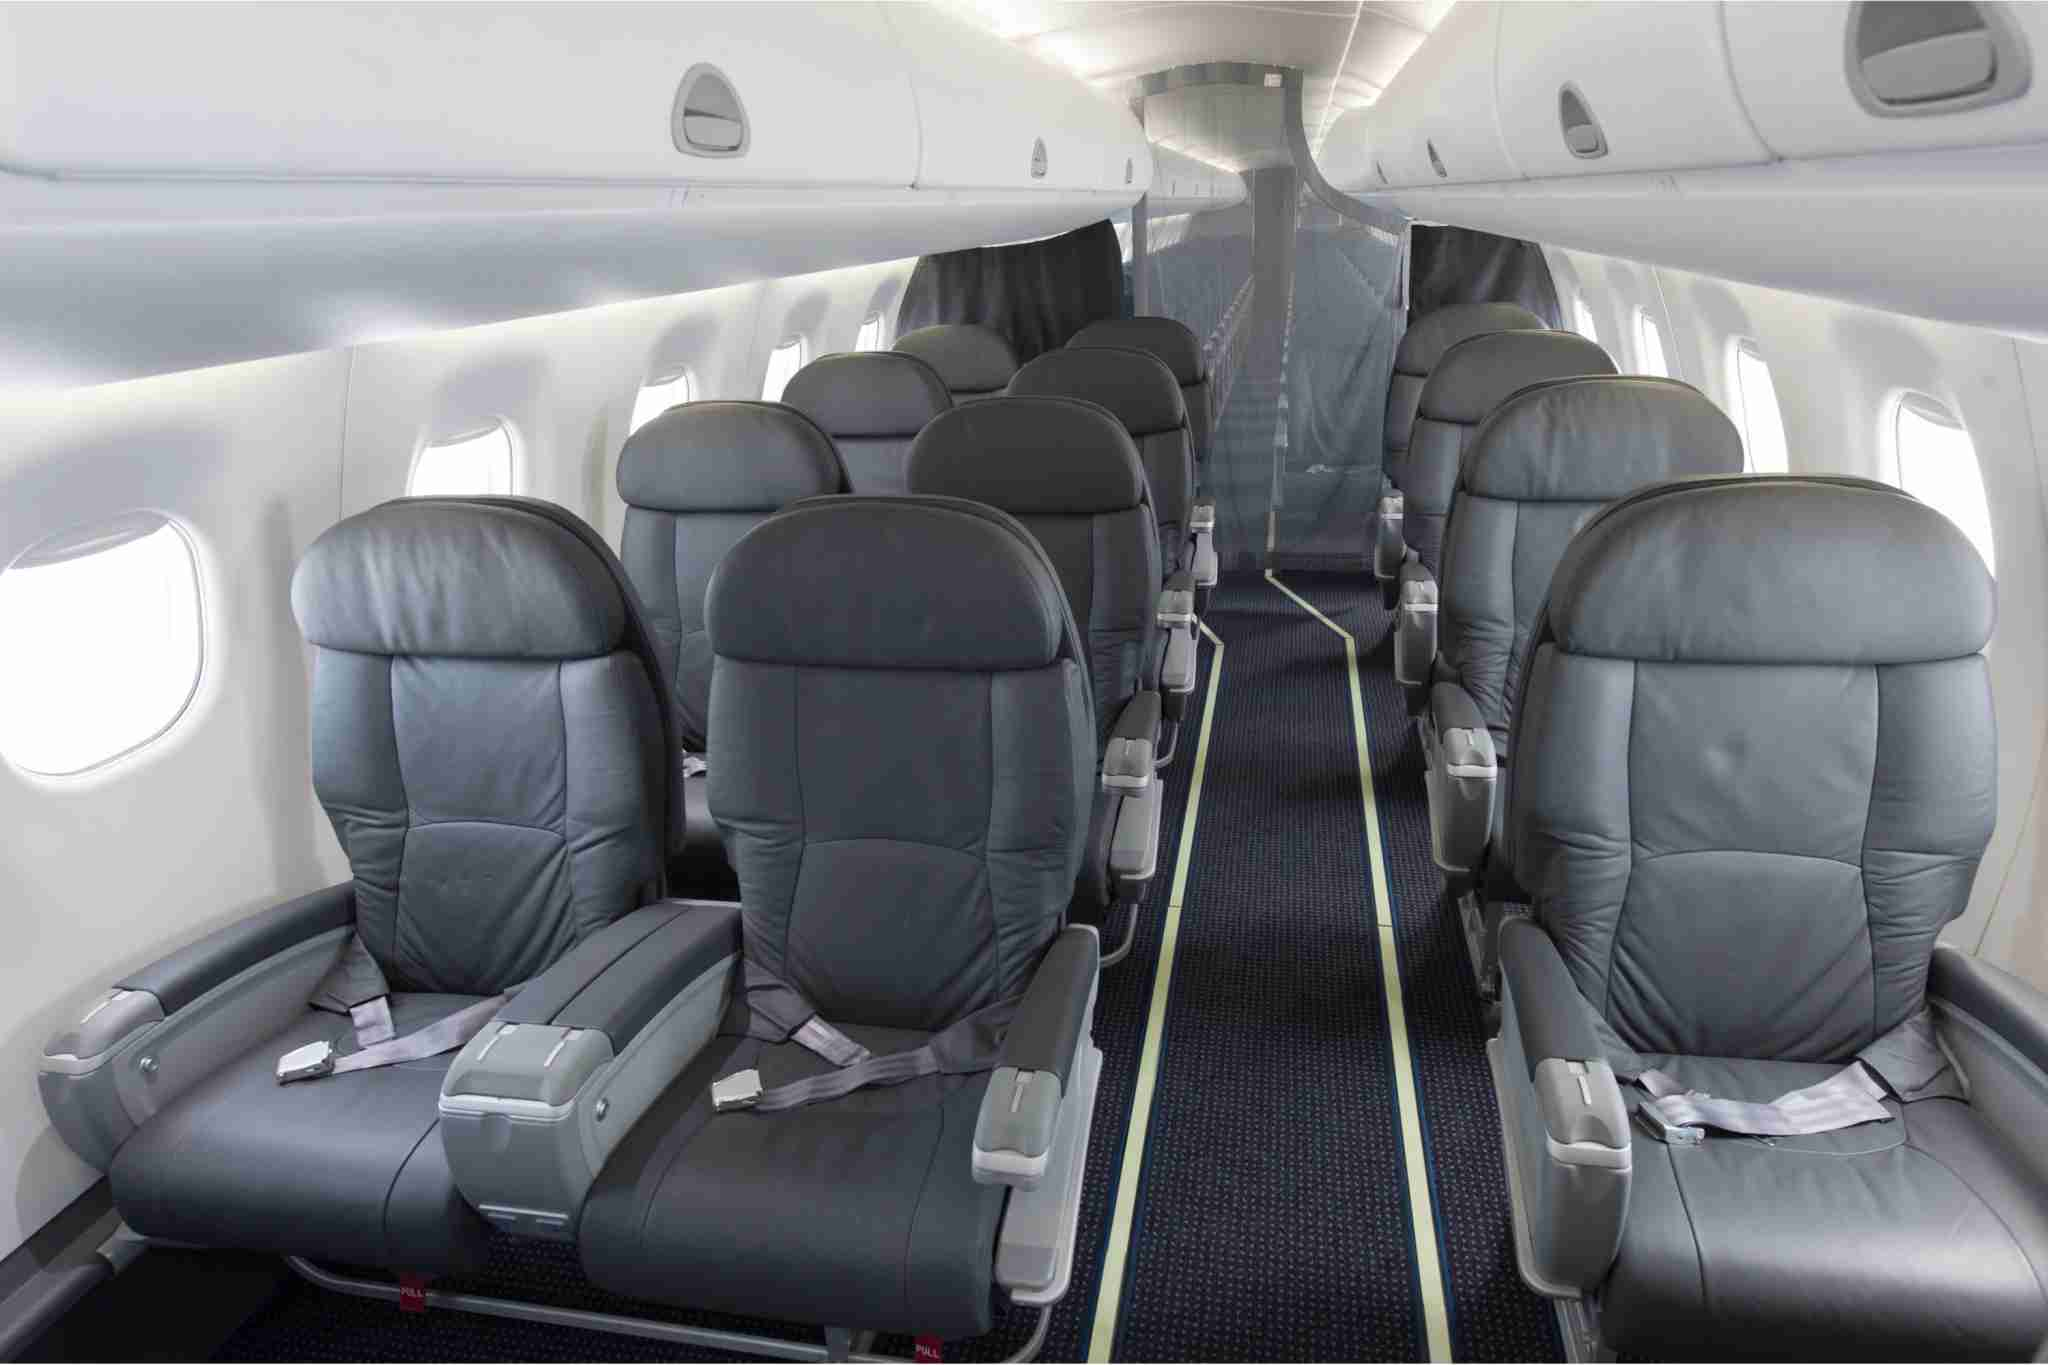 A look inside an American Airlines first class cabin.